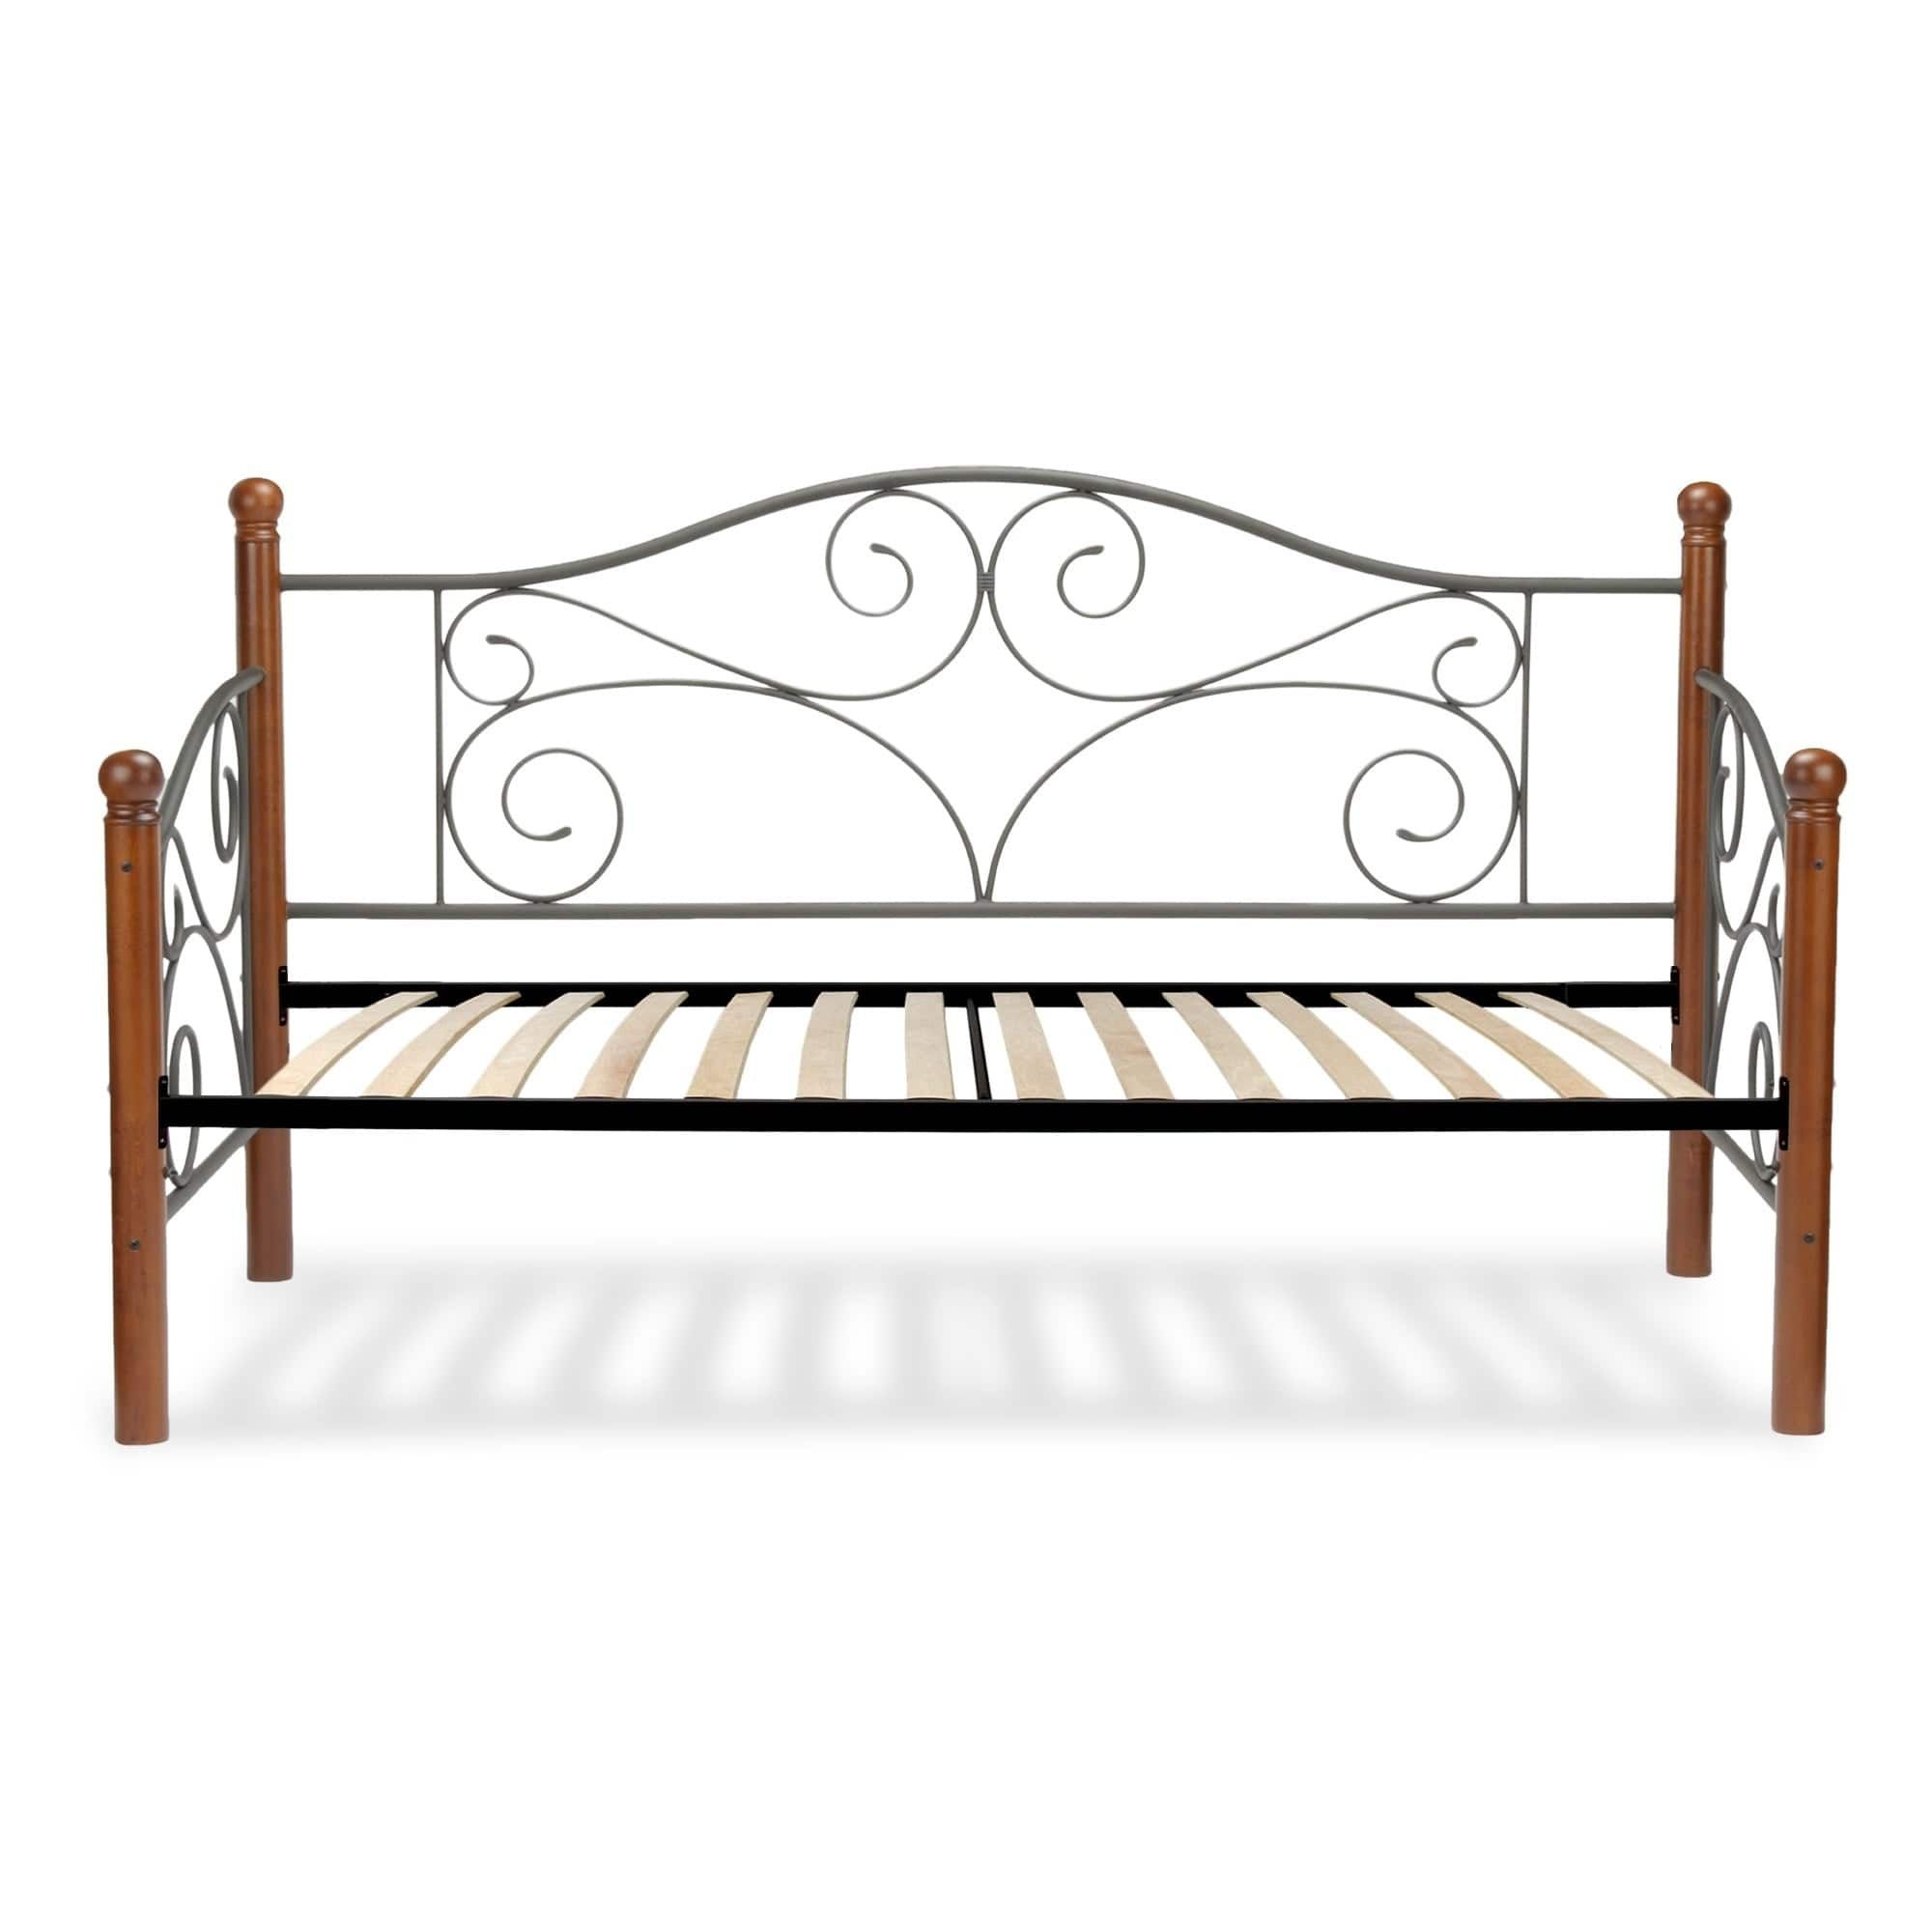 fashion bed group doral complete scrolled metal spindle paneled euro